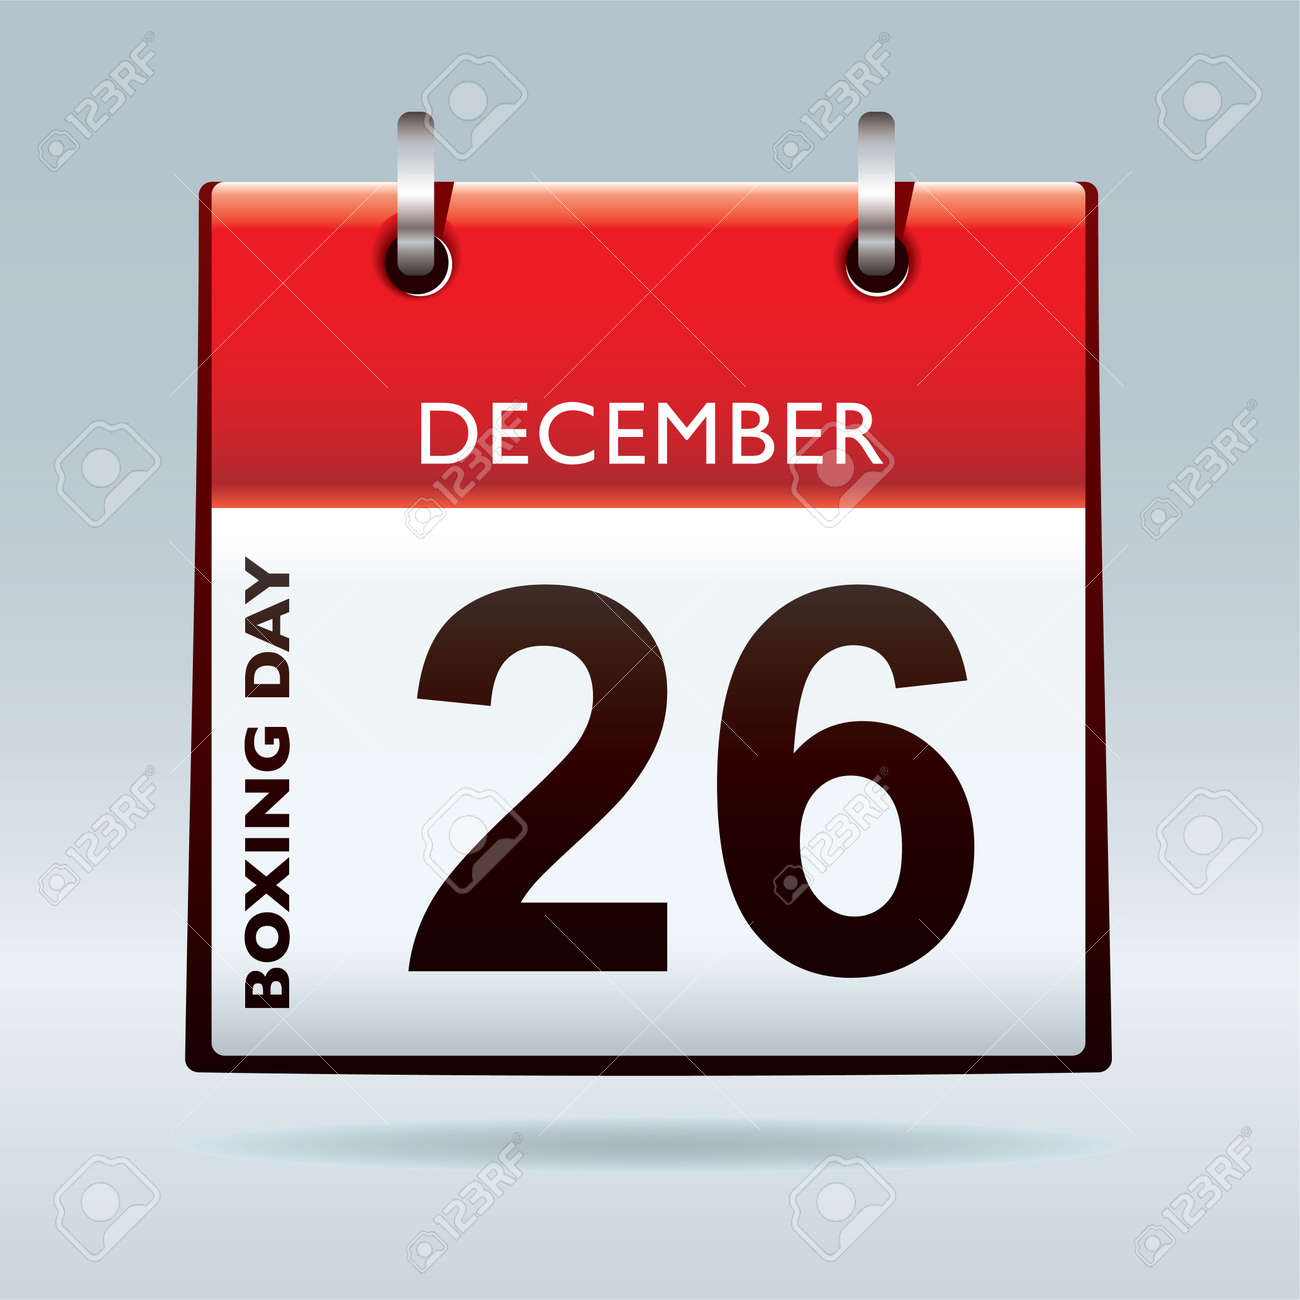 Simple red and white boxing day calendar icon - 8400019